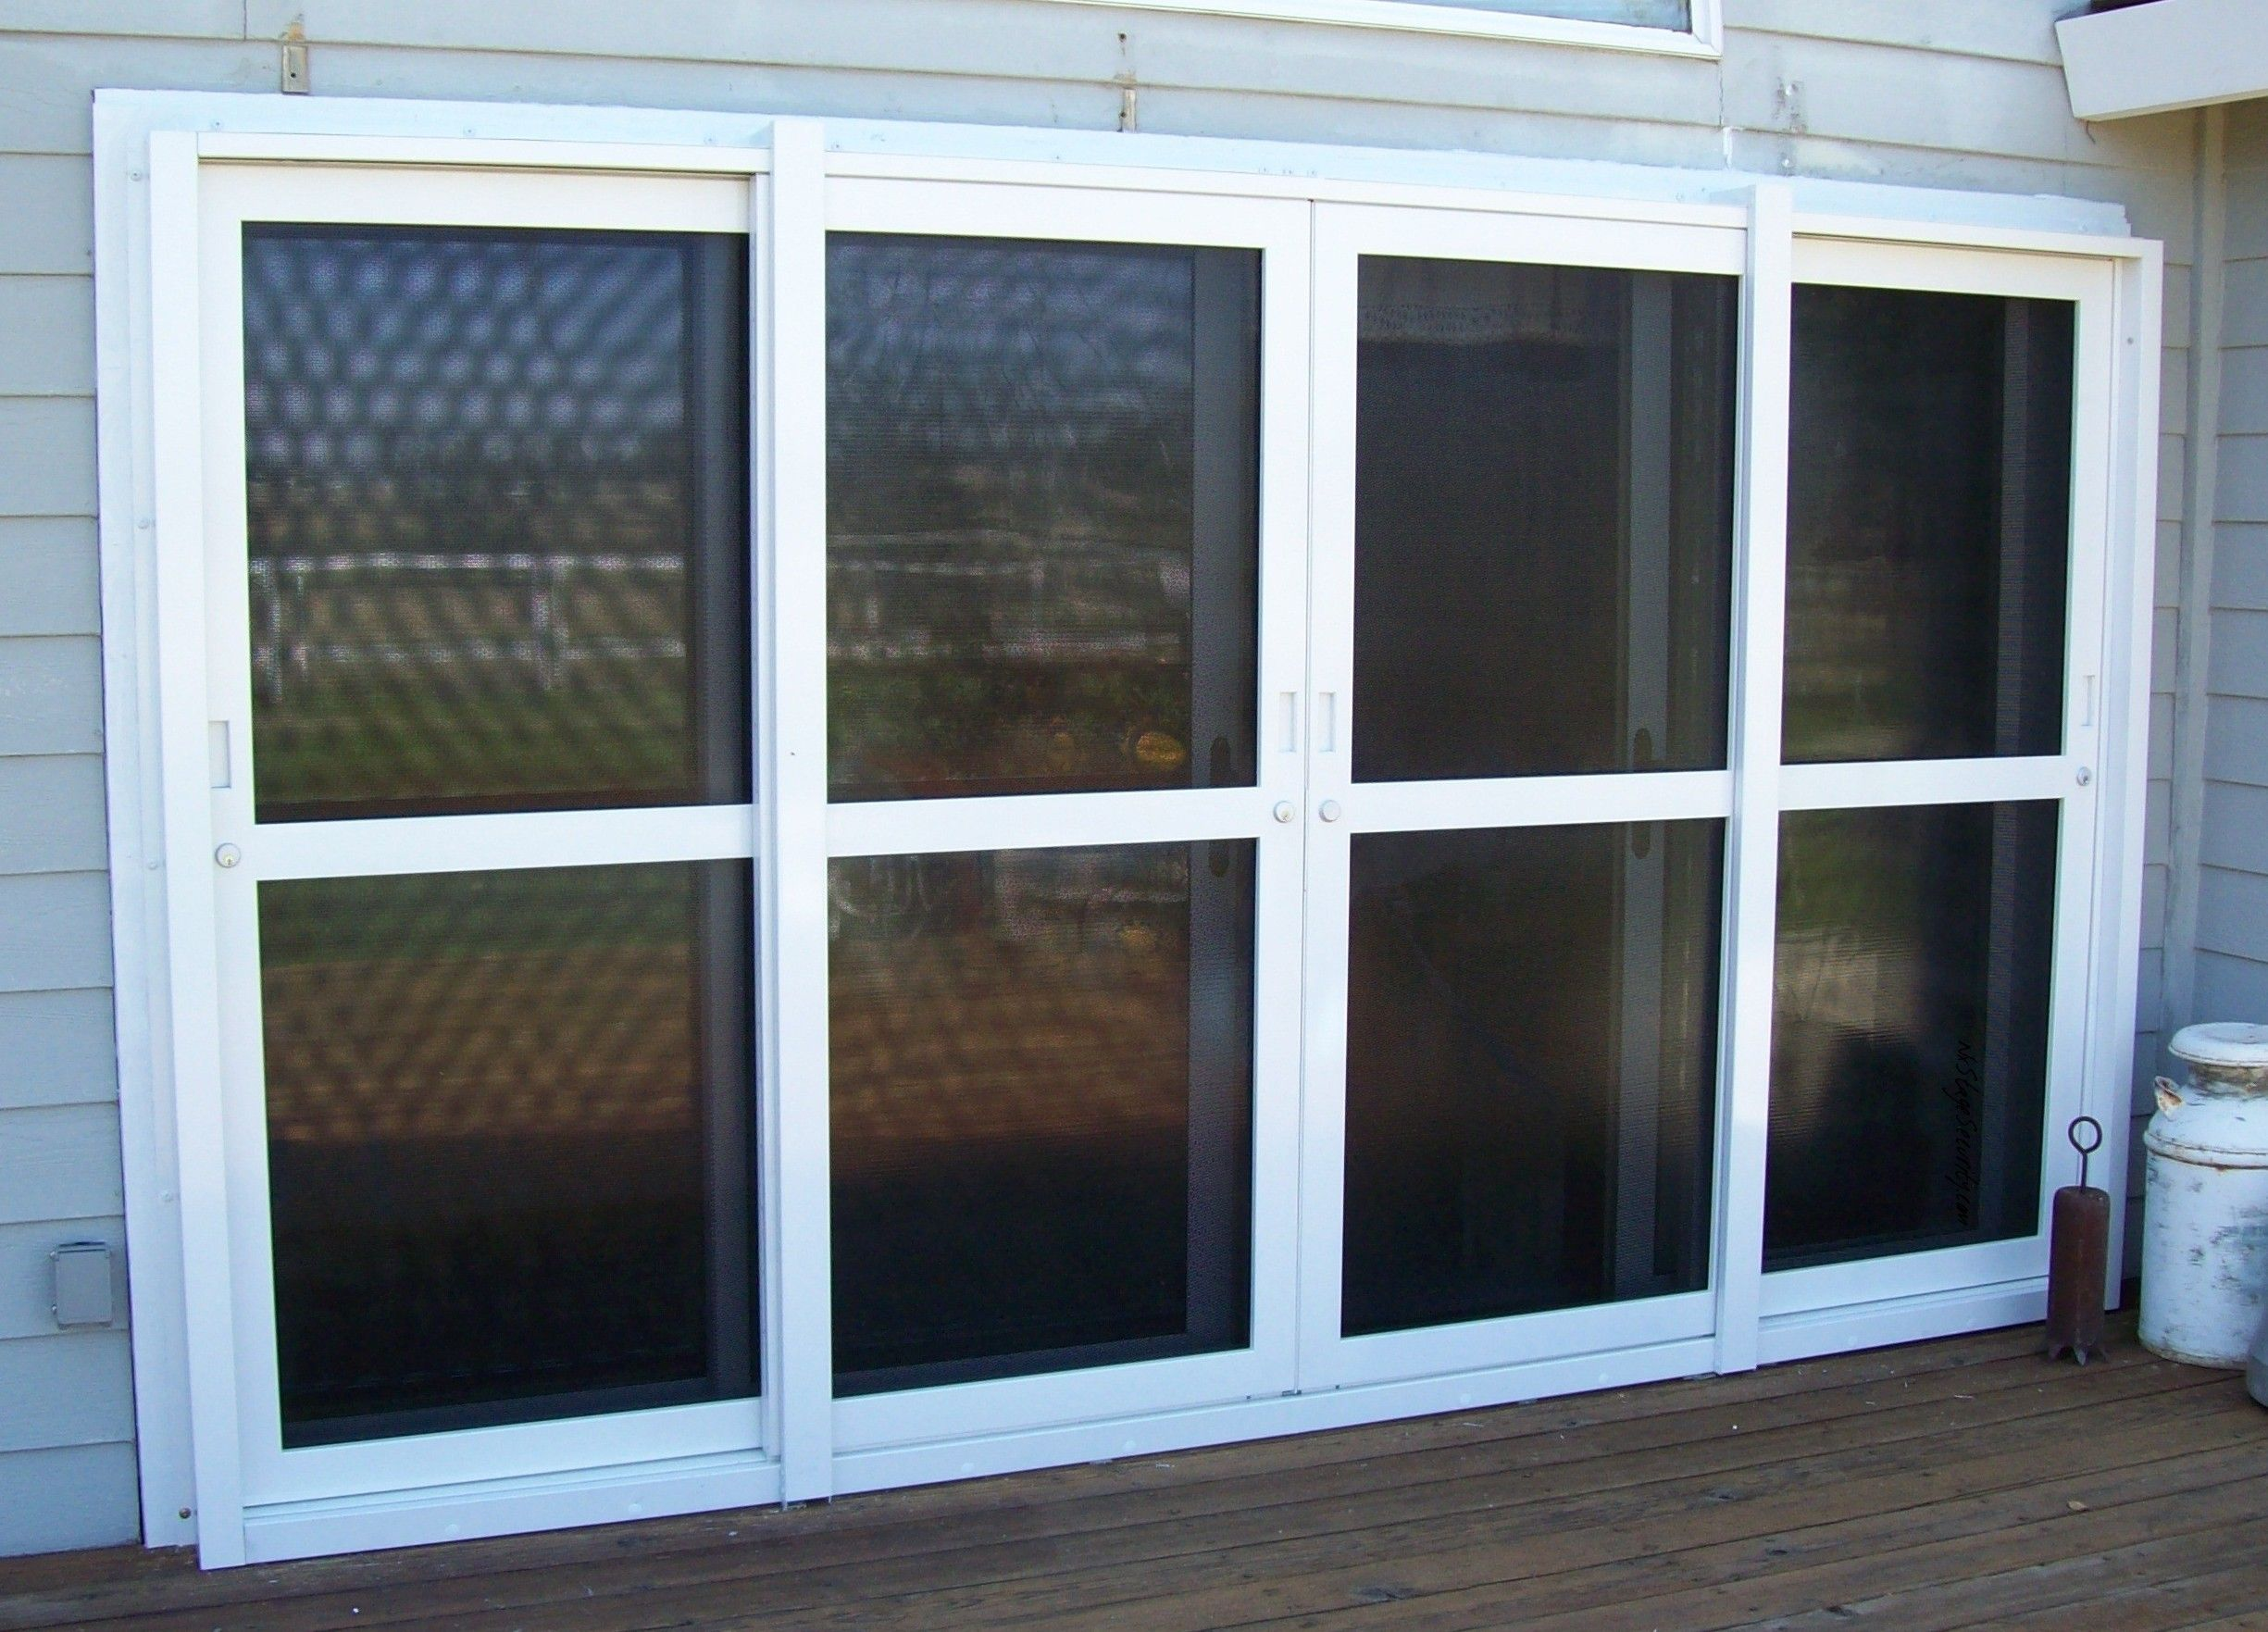 Sliding Security Doors By Nx Stage Security Sliding Glass Doors Patio Sliding Glass Door Screen Patio Screen Door